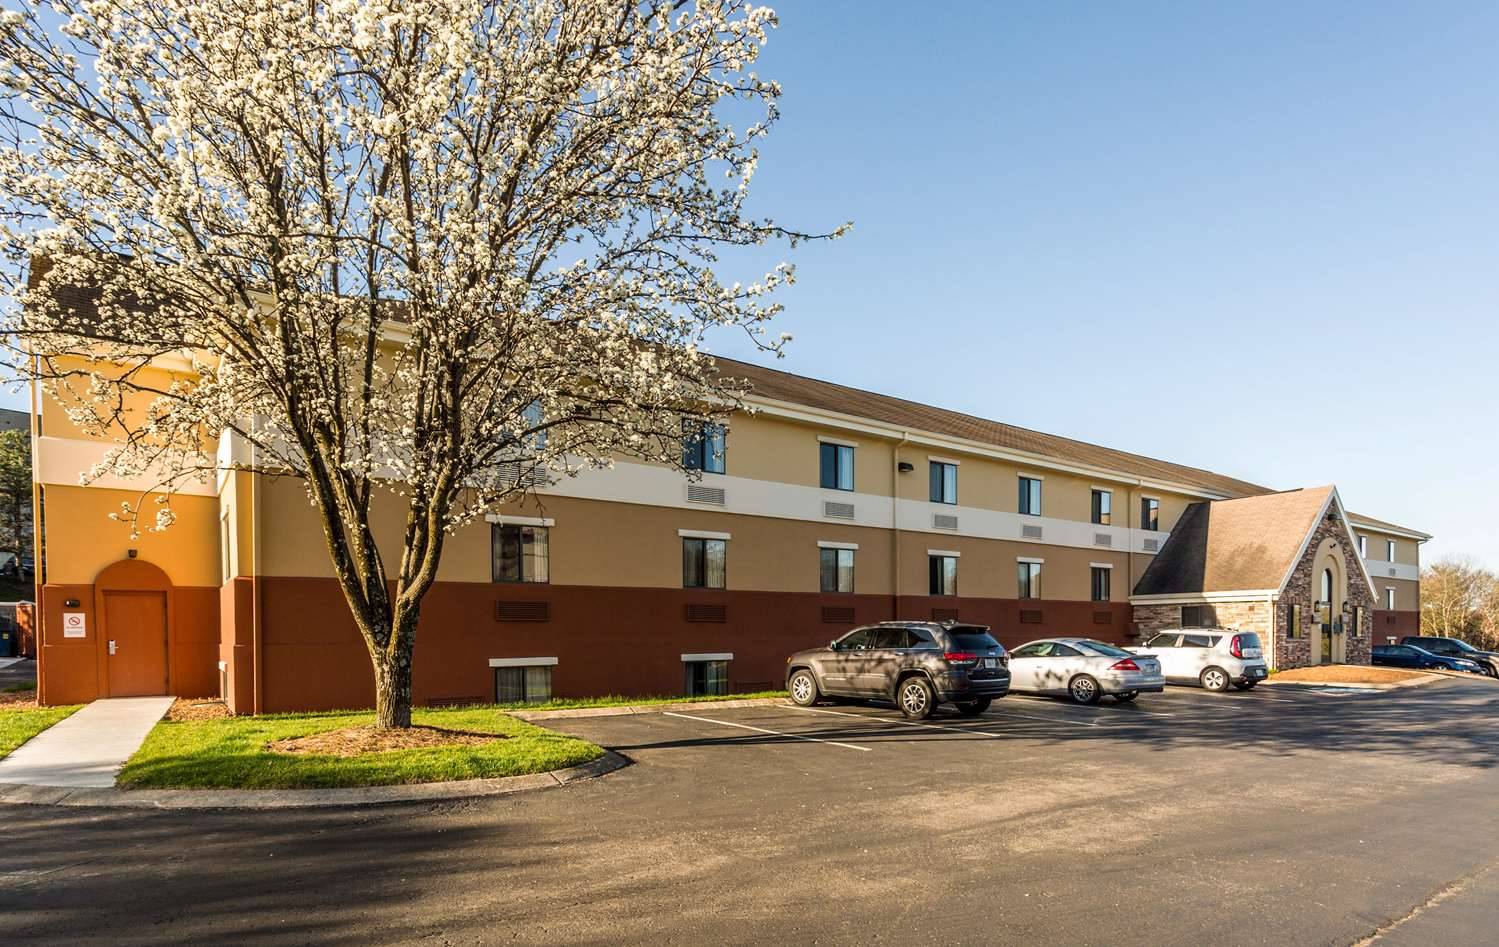 Extended Stay America Hotel Brentwood, TN - See Discounts